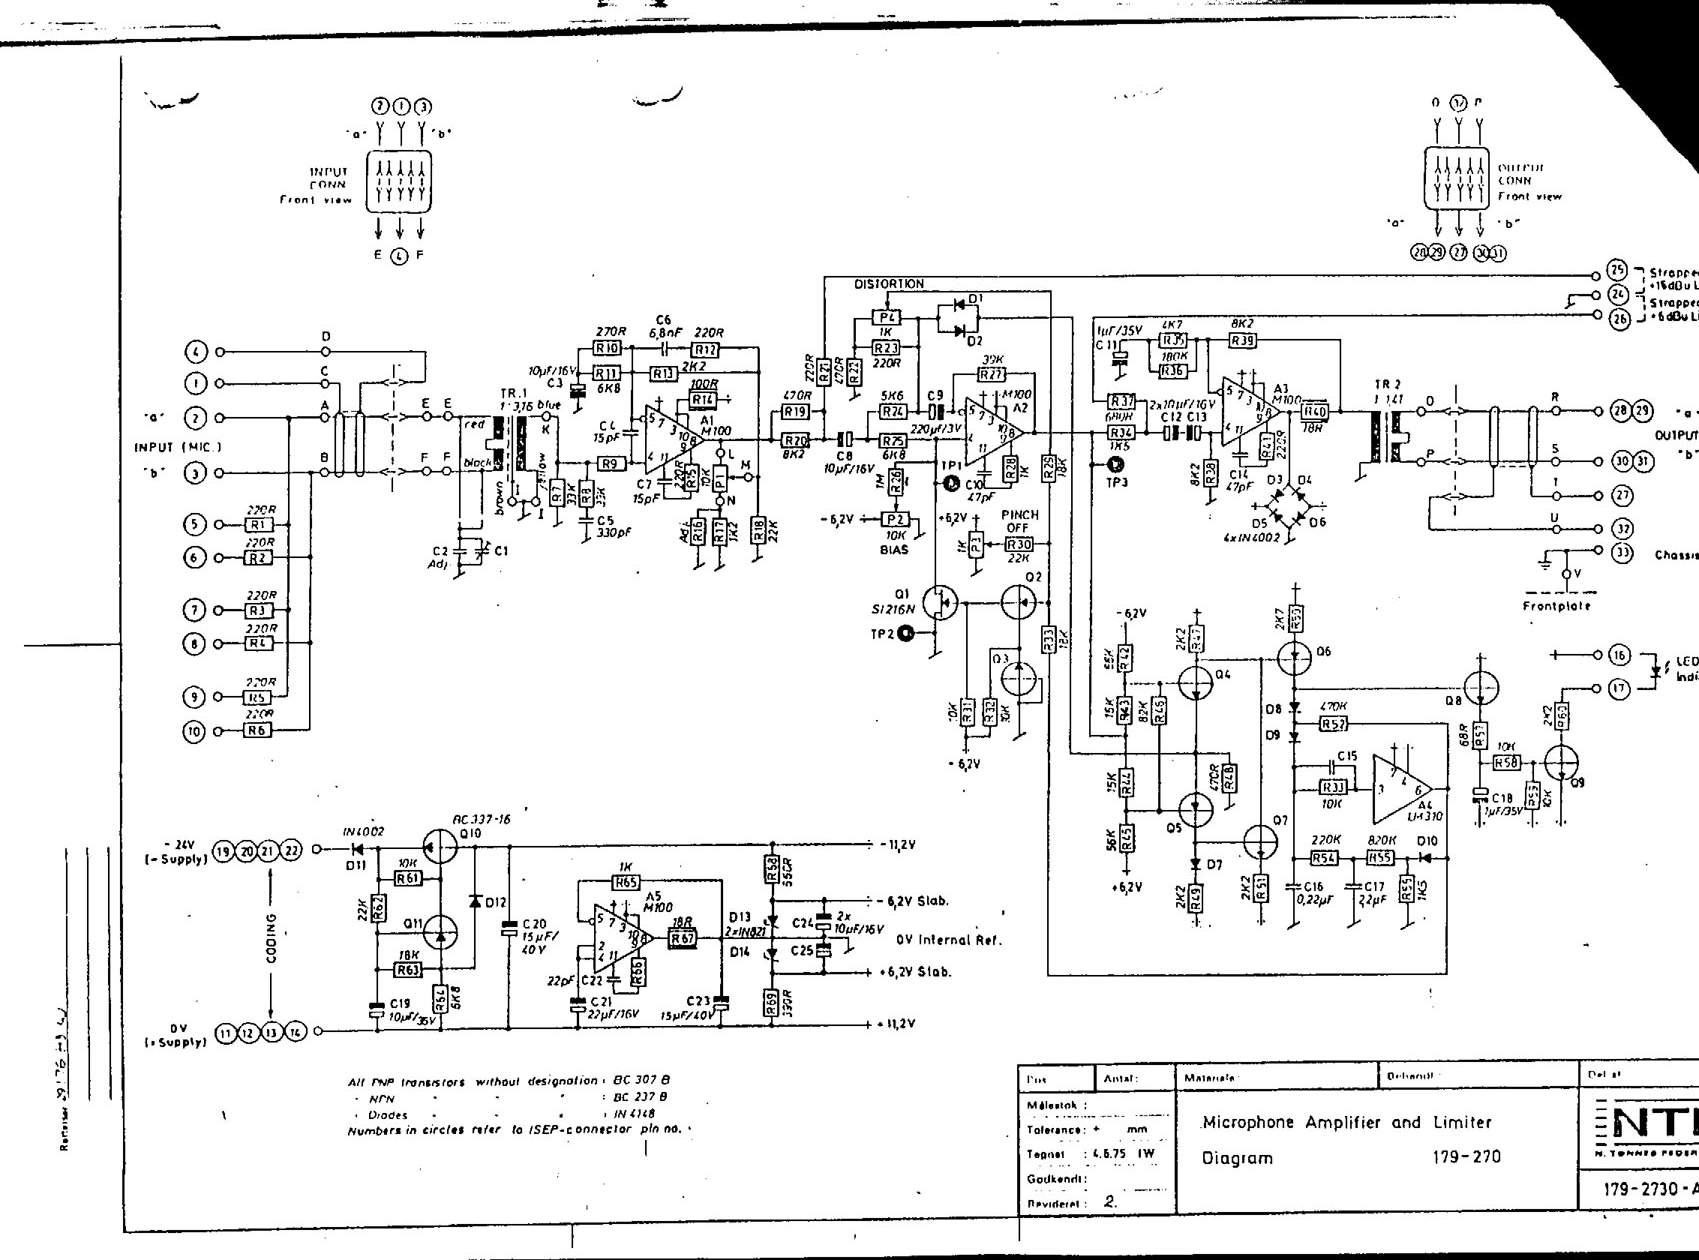 Hall Effect Circuit Buzzer Just Another Wiring Diagram Blog Sensor Switch Gas Sensors Detectors Circuits Next Gr With Display